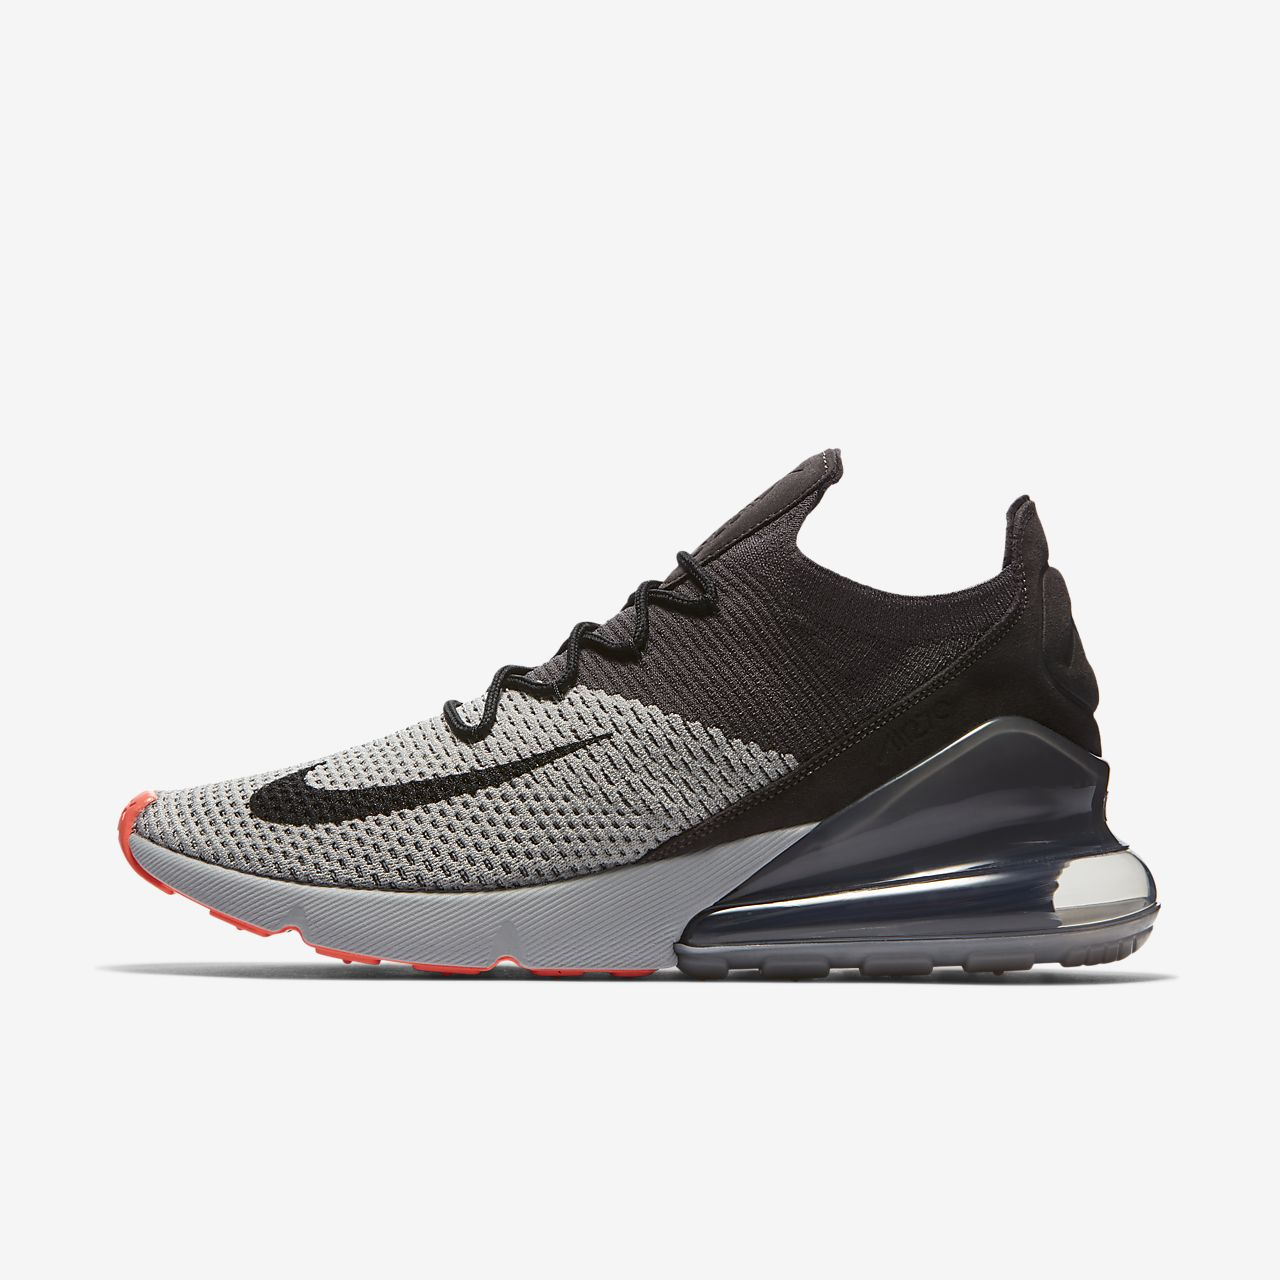 finest selection ef2f1 82c61 ... Nike Air Max 270 Flyknit Men s Shoe